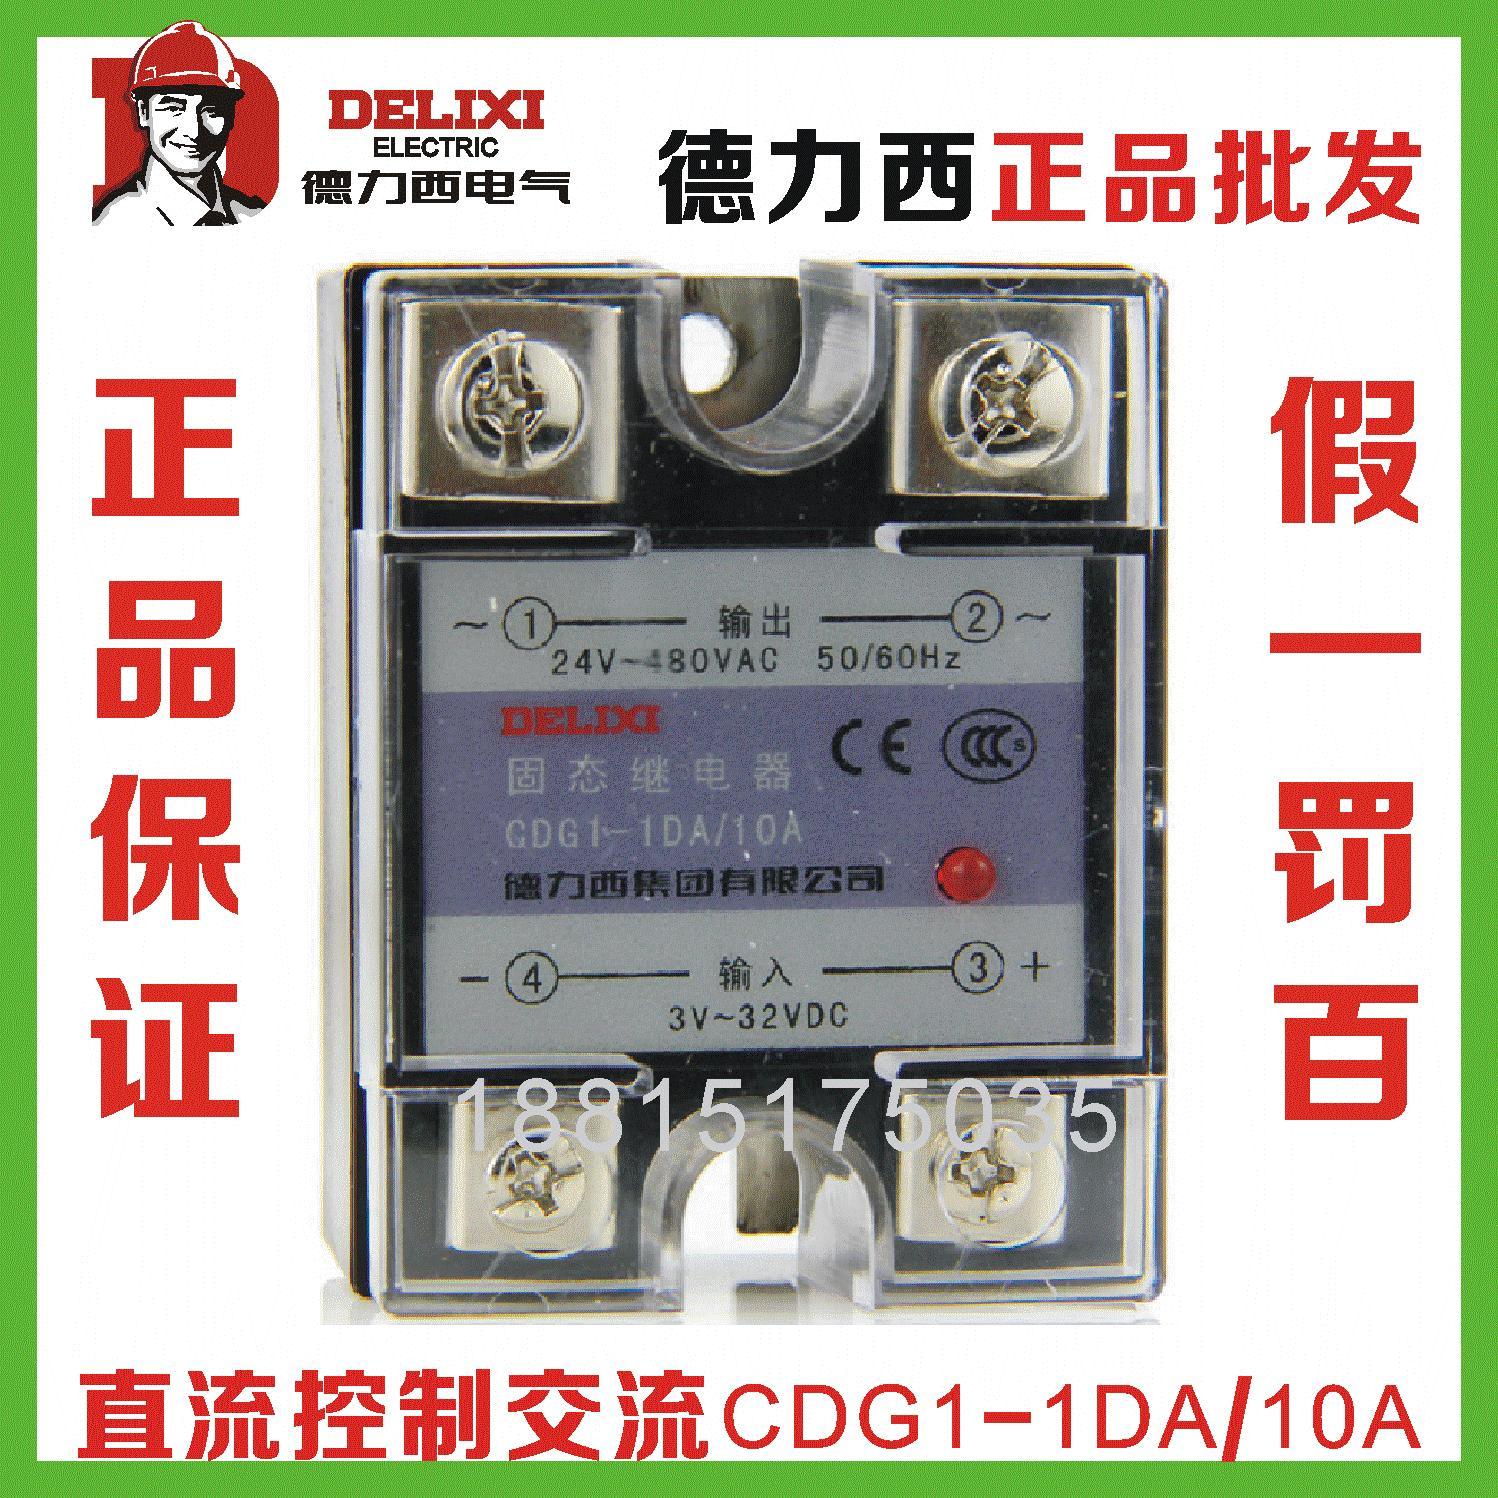 Genuine West Delixi Solid State Relay Cdg1 1da 10a Ultra Canada Mayger D4810